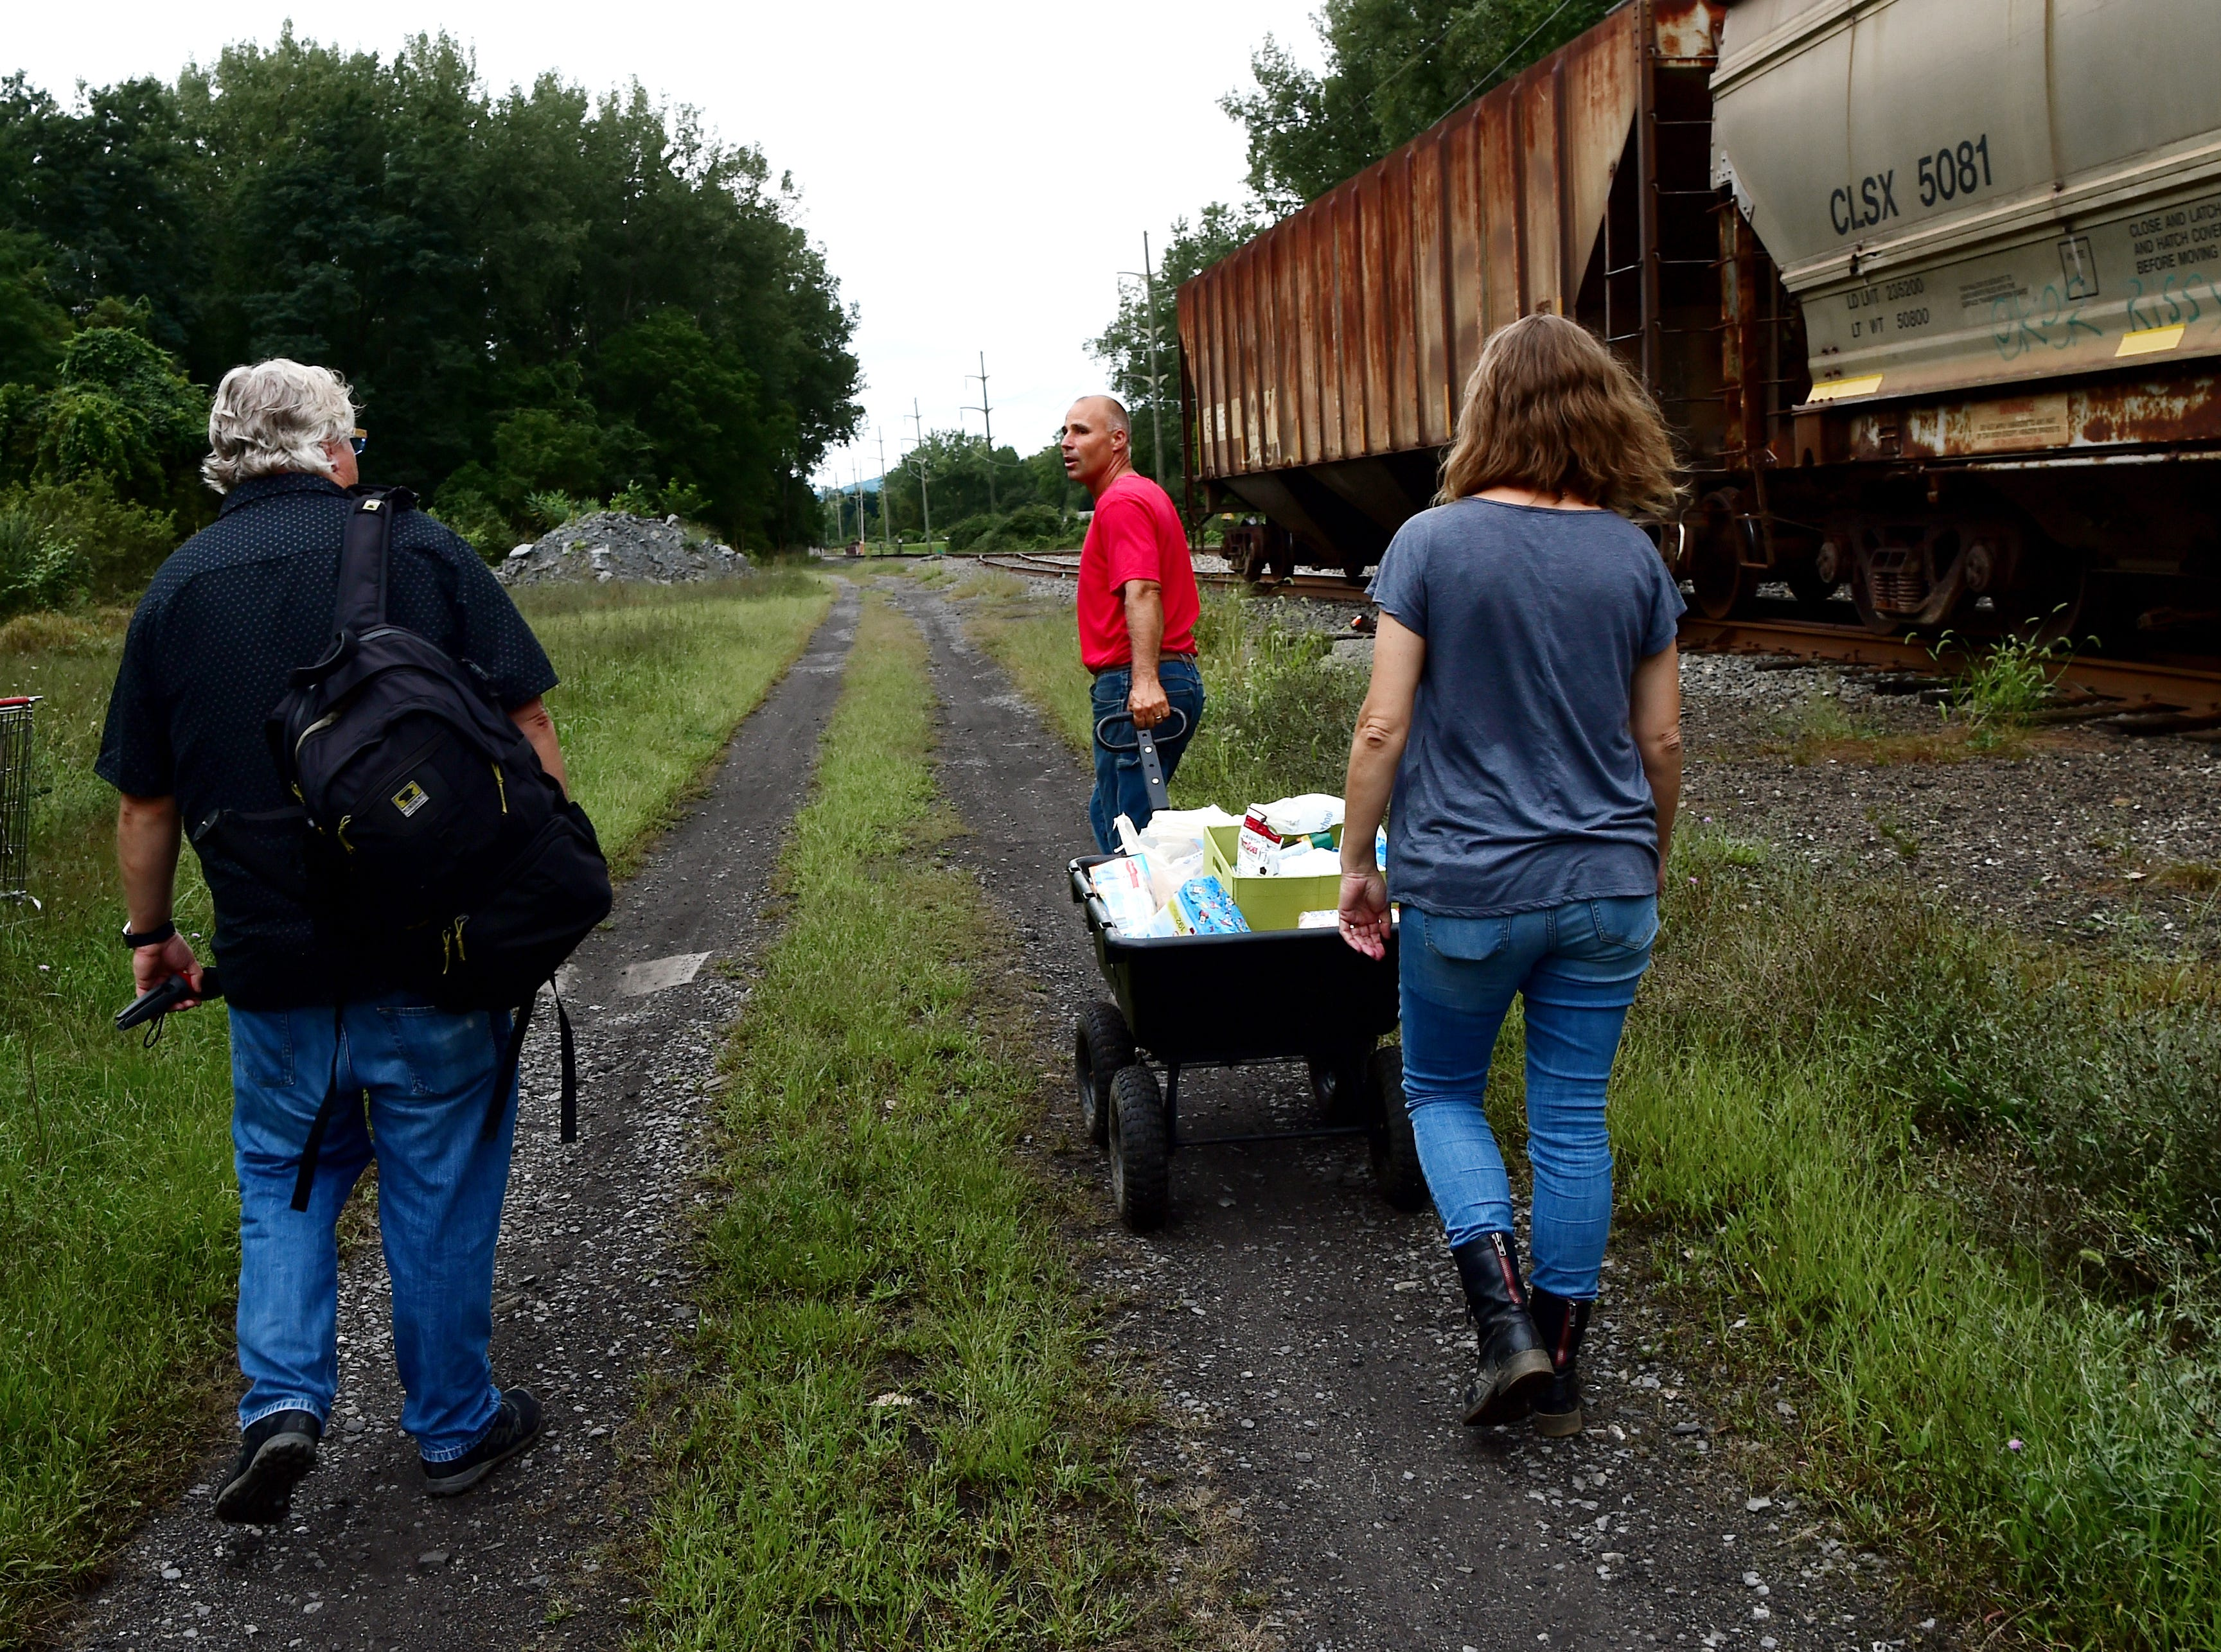 Mark Horvath of Binghamton, Carmen Guidi of Newfield,  and Deb Wilke of Horseheads, deliver essential supplies including water, toilet paper and bug repellant, to The Jungle in Ithaca on August 31, 2018. Located behind the shopping centers along Rt. 13, The Jungle is home to dozens of homeless people.